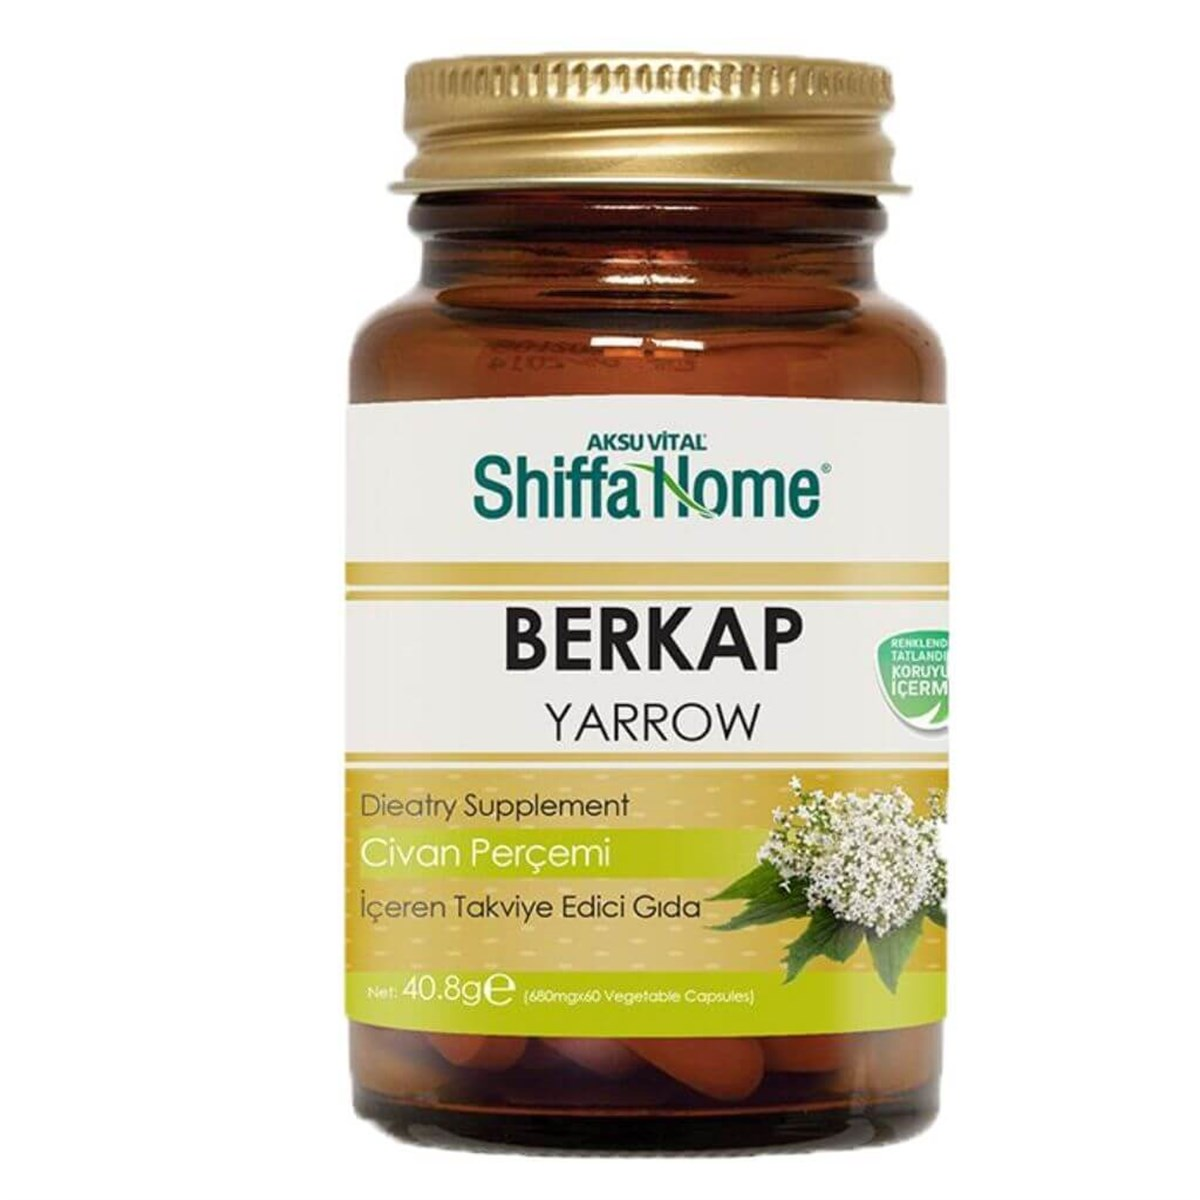 Shiffa Home Berkap Bsr Kapsül 60x680mg